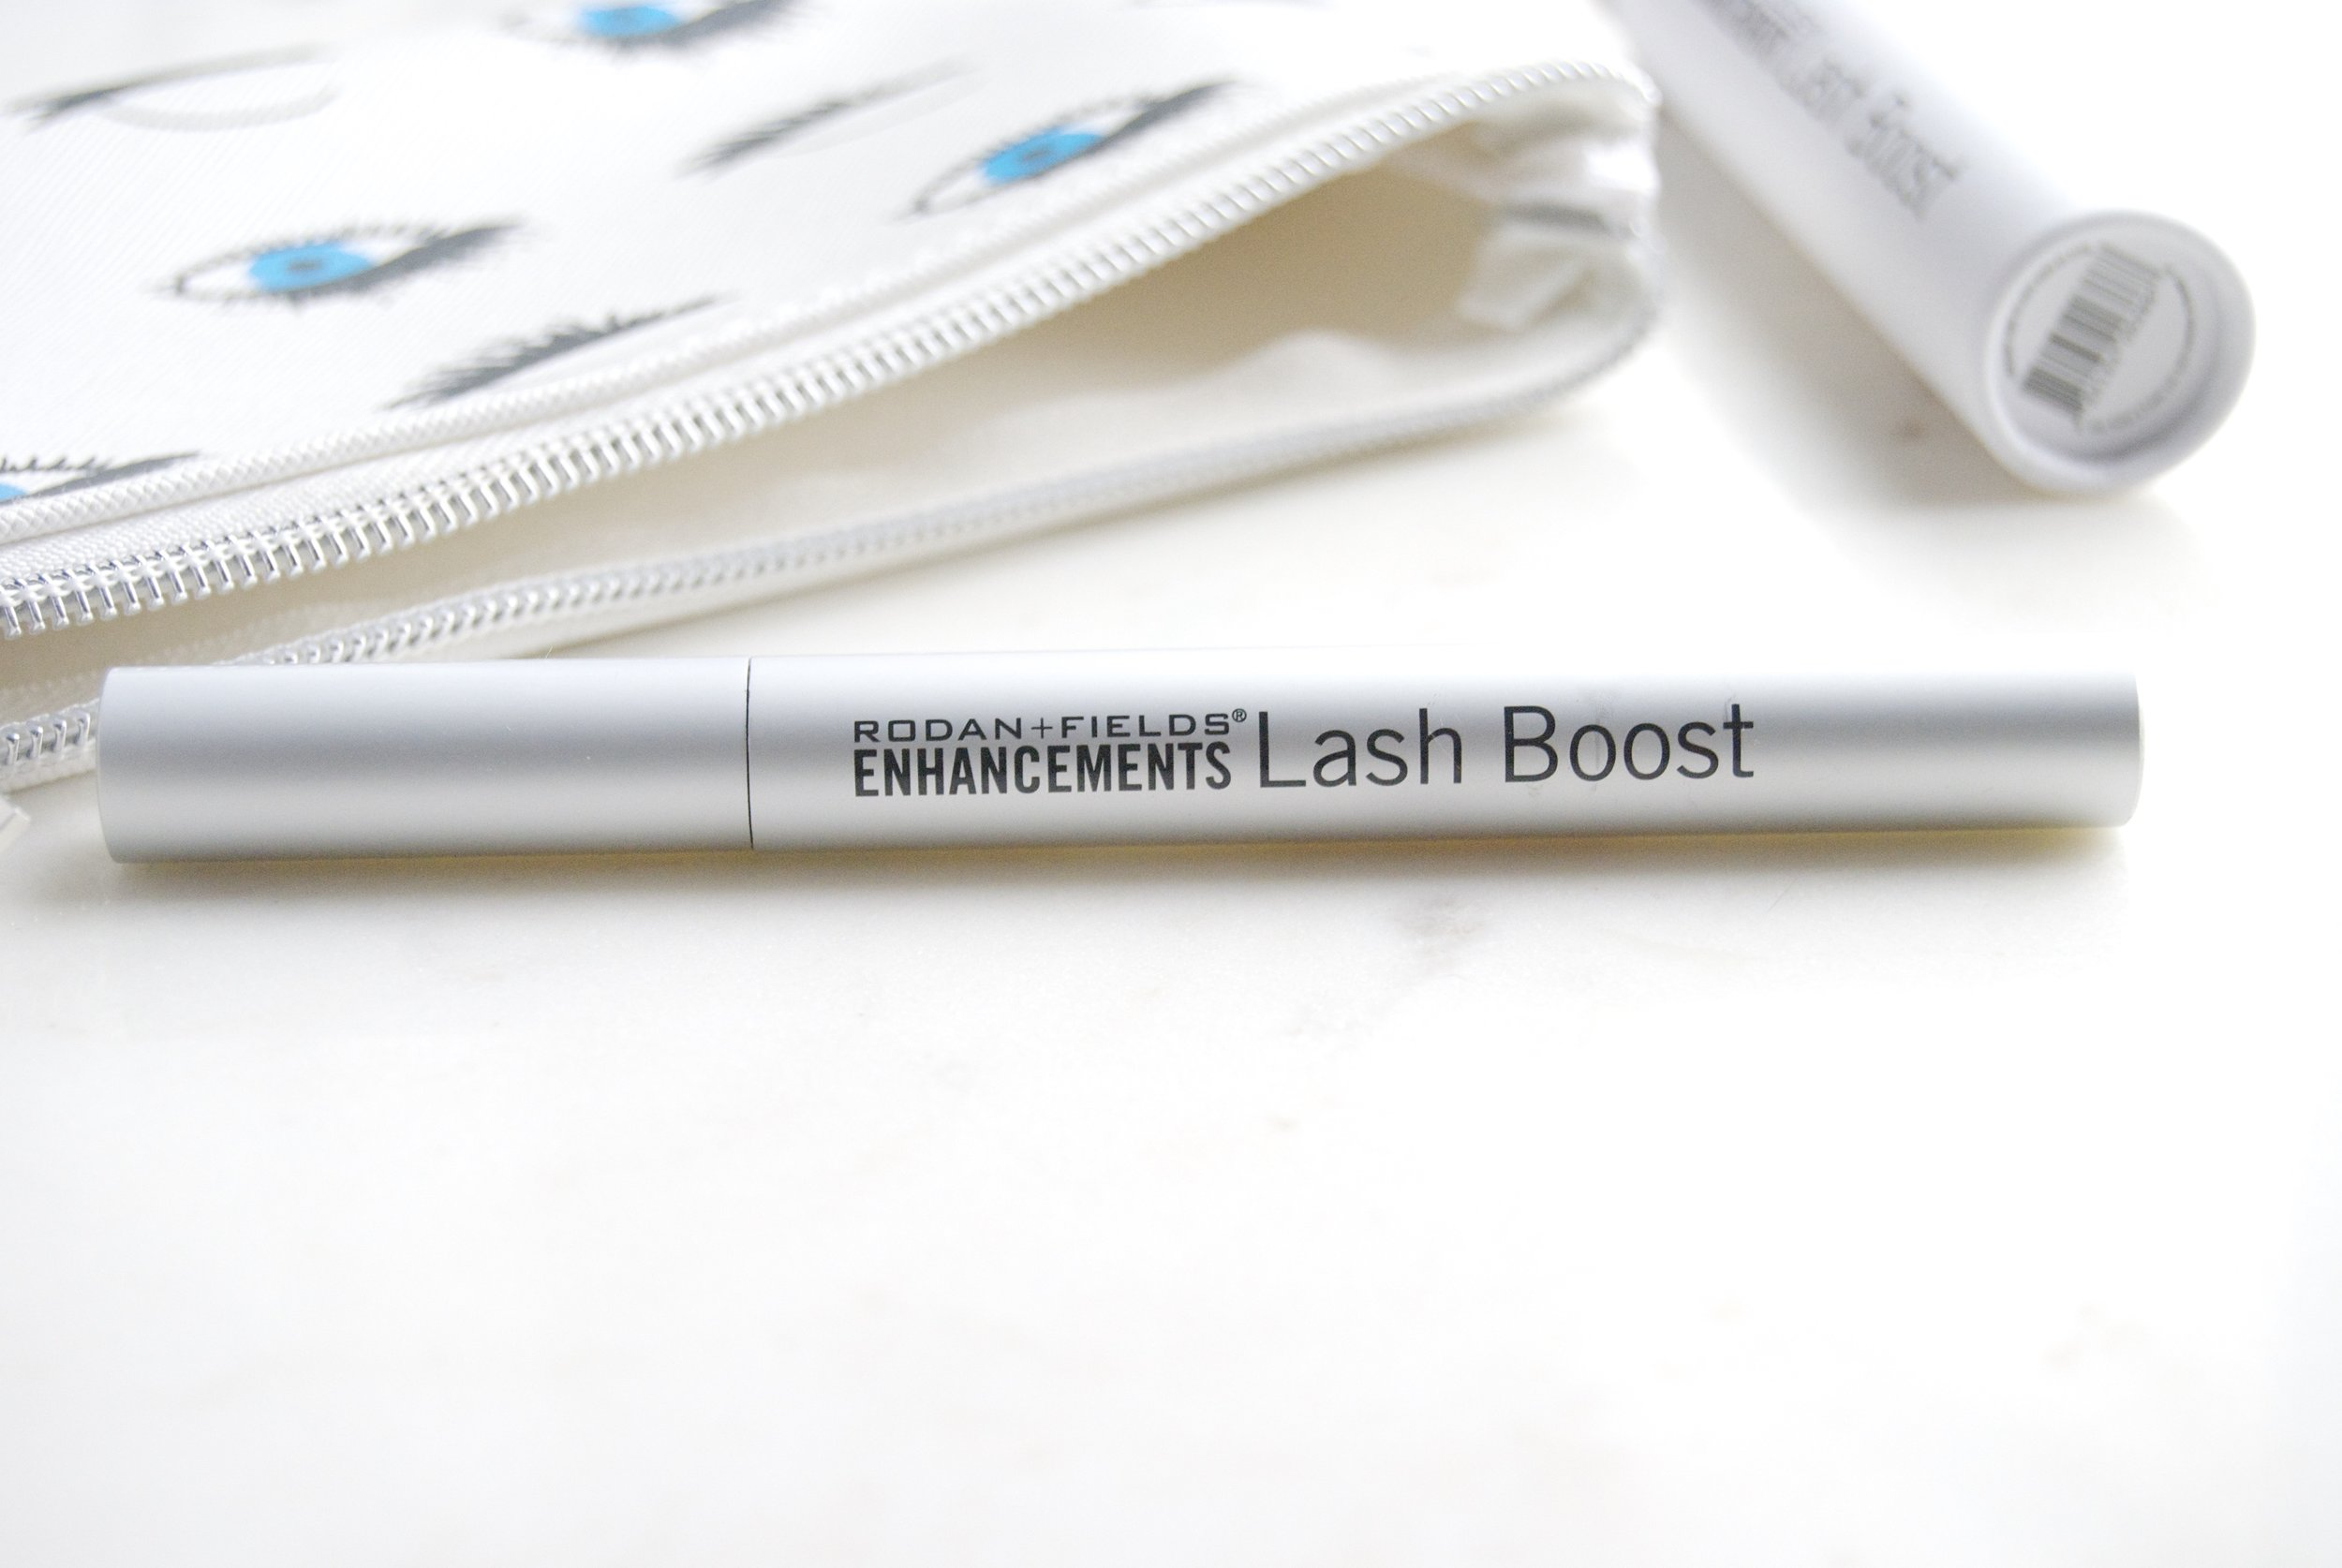 Lash Boost Rodan and Fields Enhancements